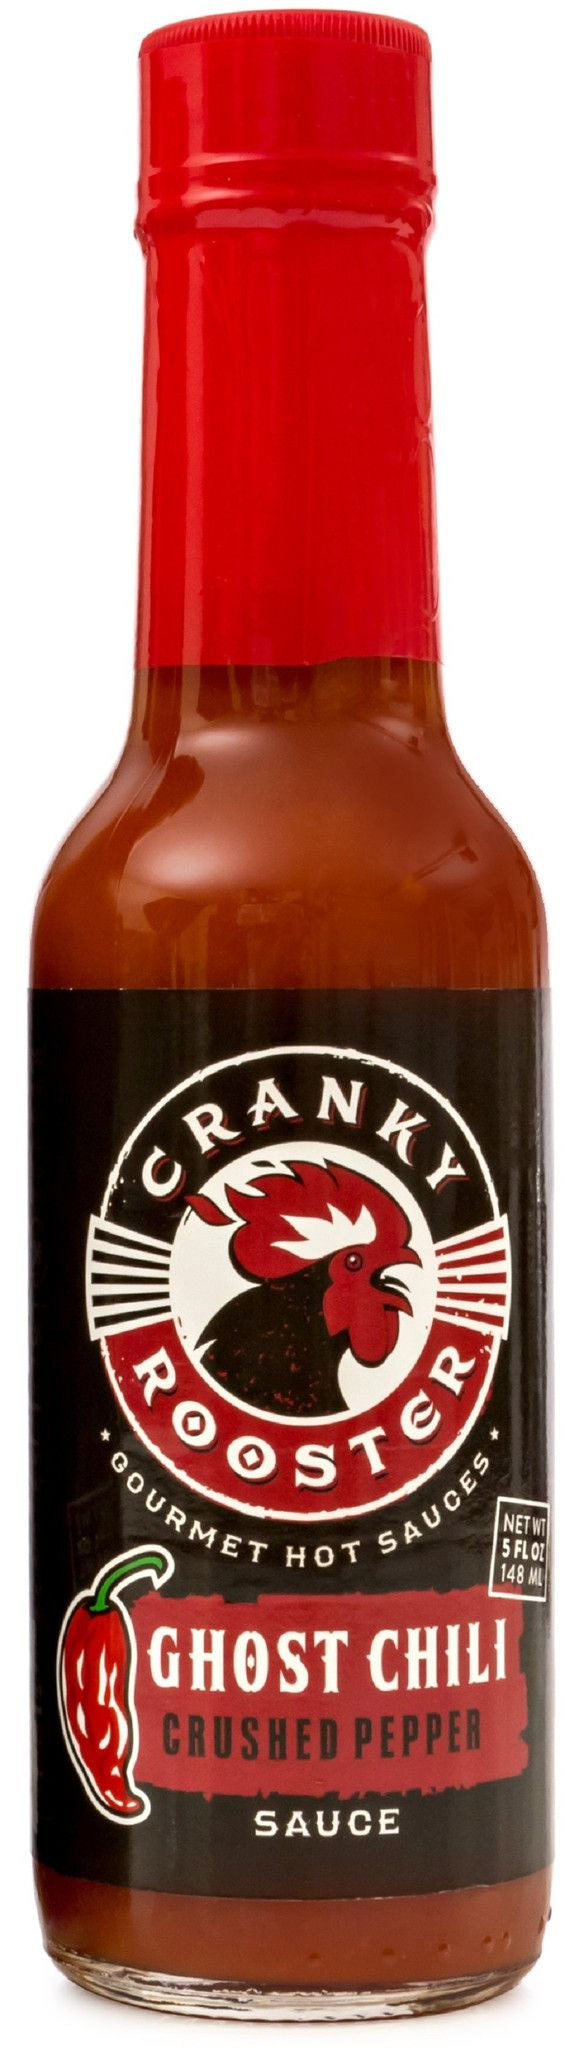 Ghost Pepper (Bhut Jolokia) Hot Sauce by Cranky Rooster